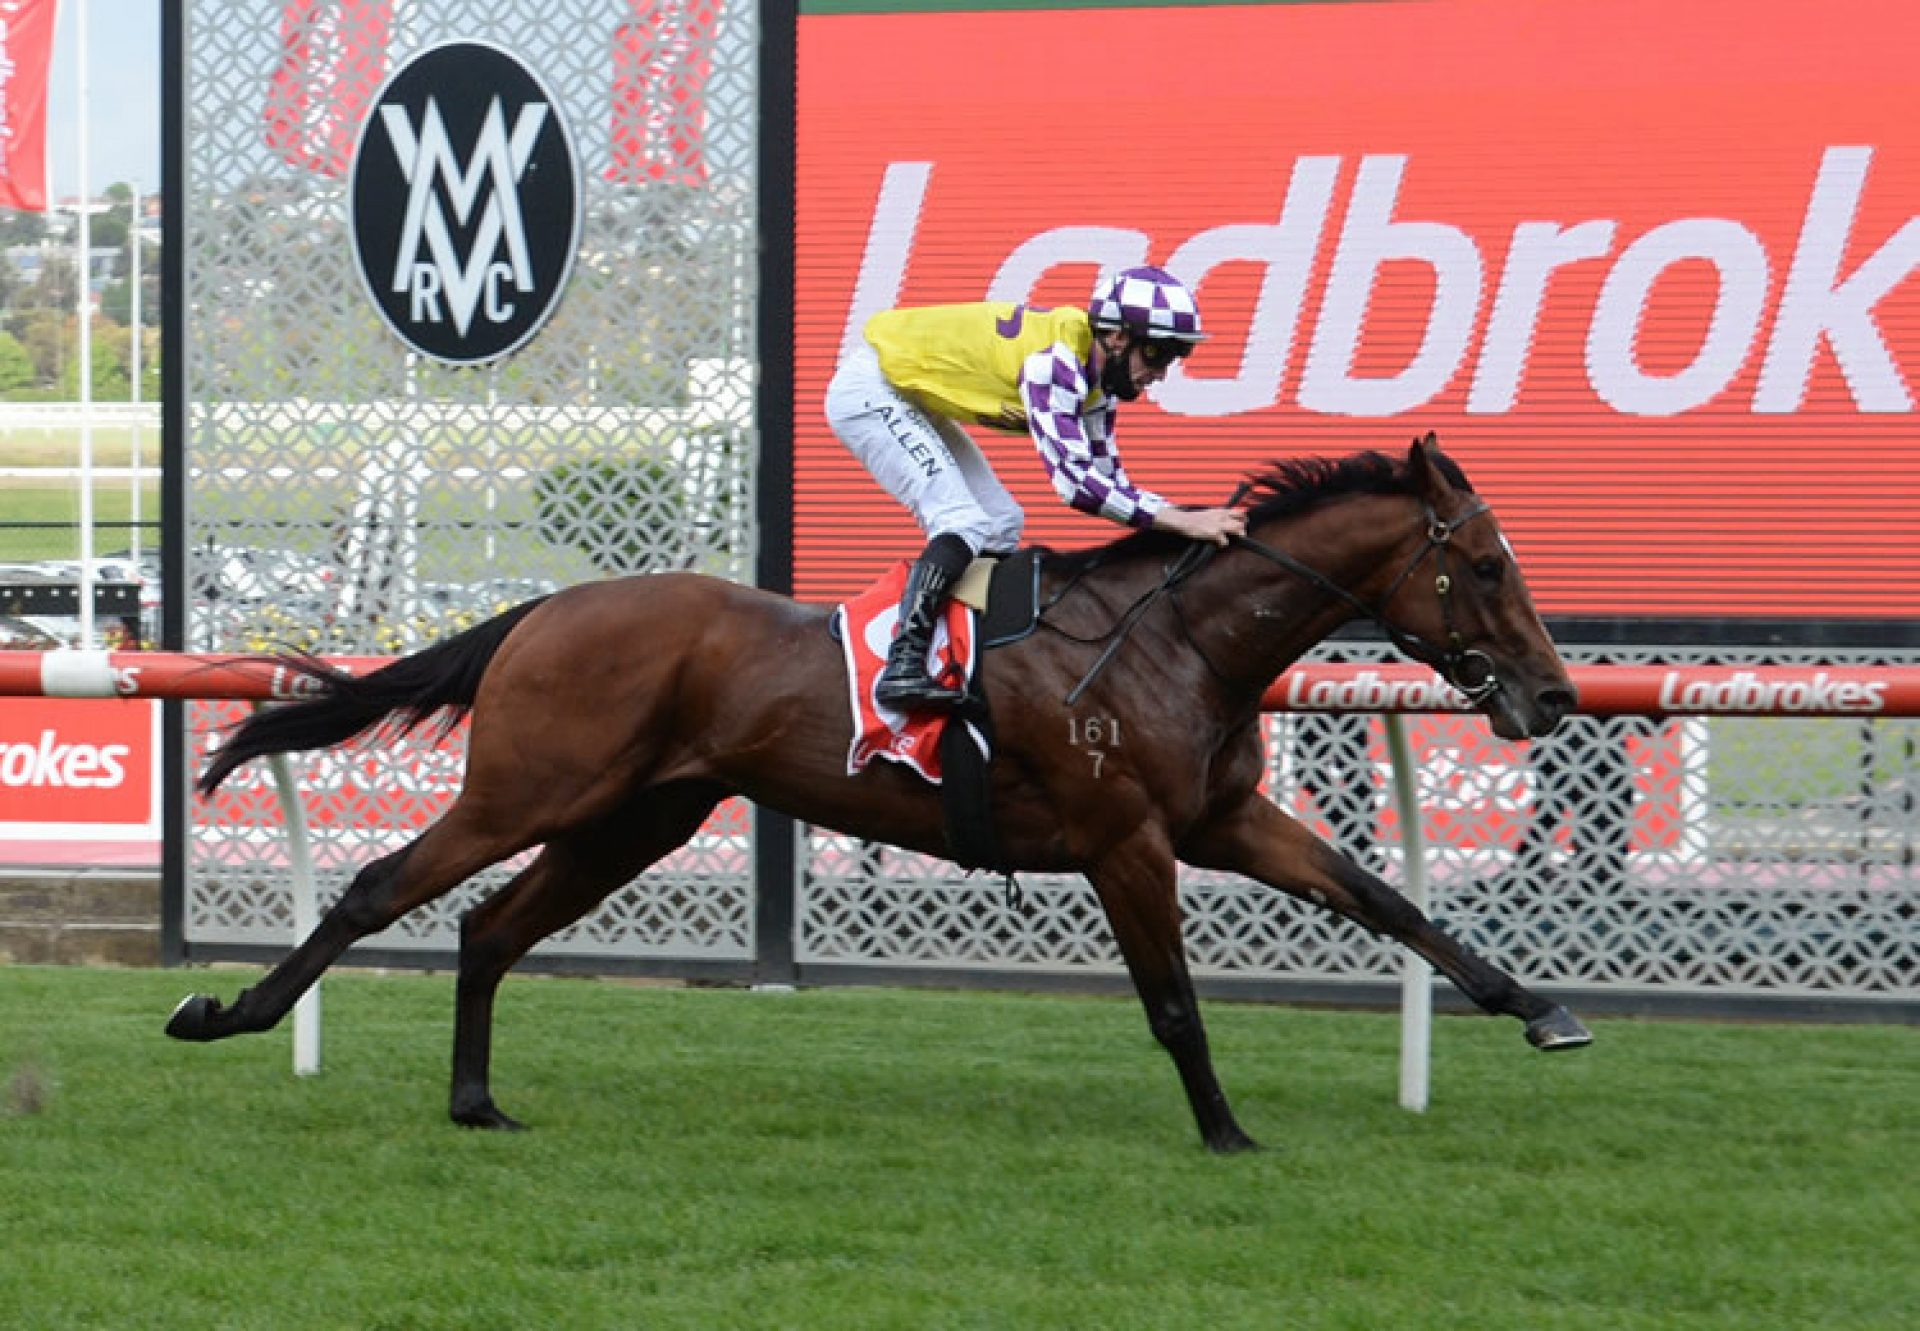 Captain Canuck (Vancouver) winning at Moonee Valley